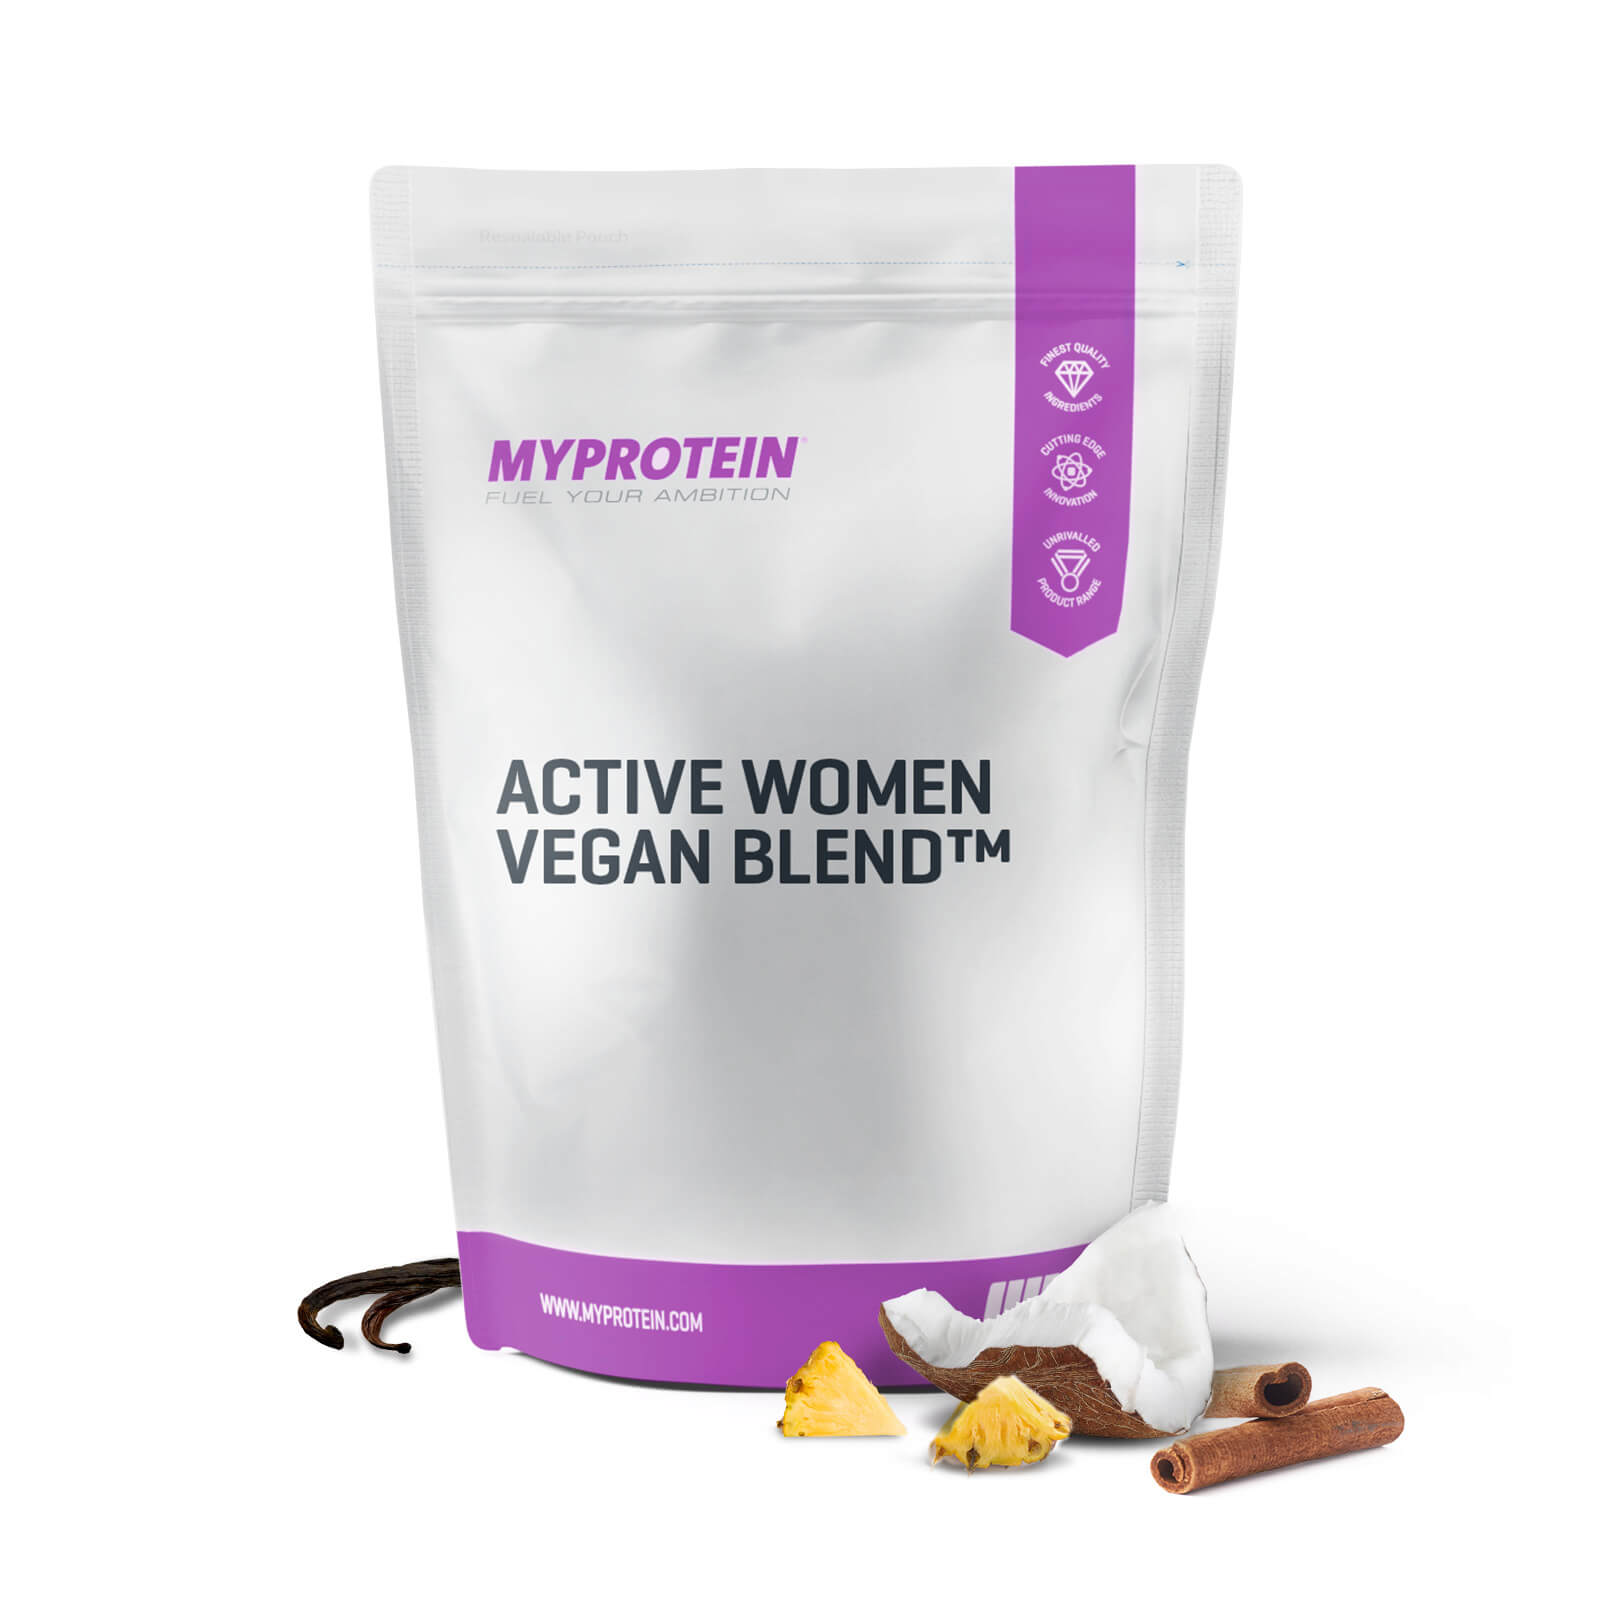 Active Woman Vegan Blend - Pineapple & Coconut - 500g